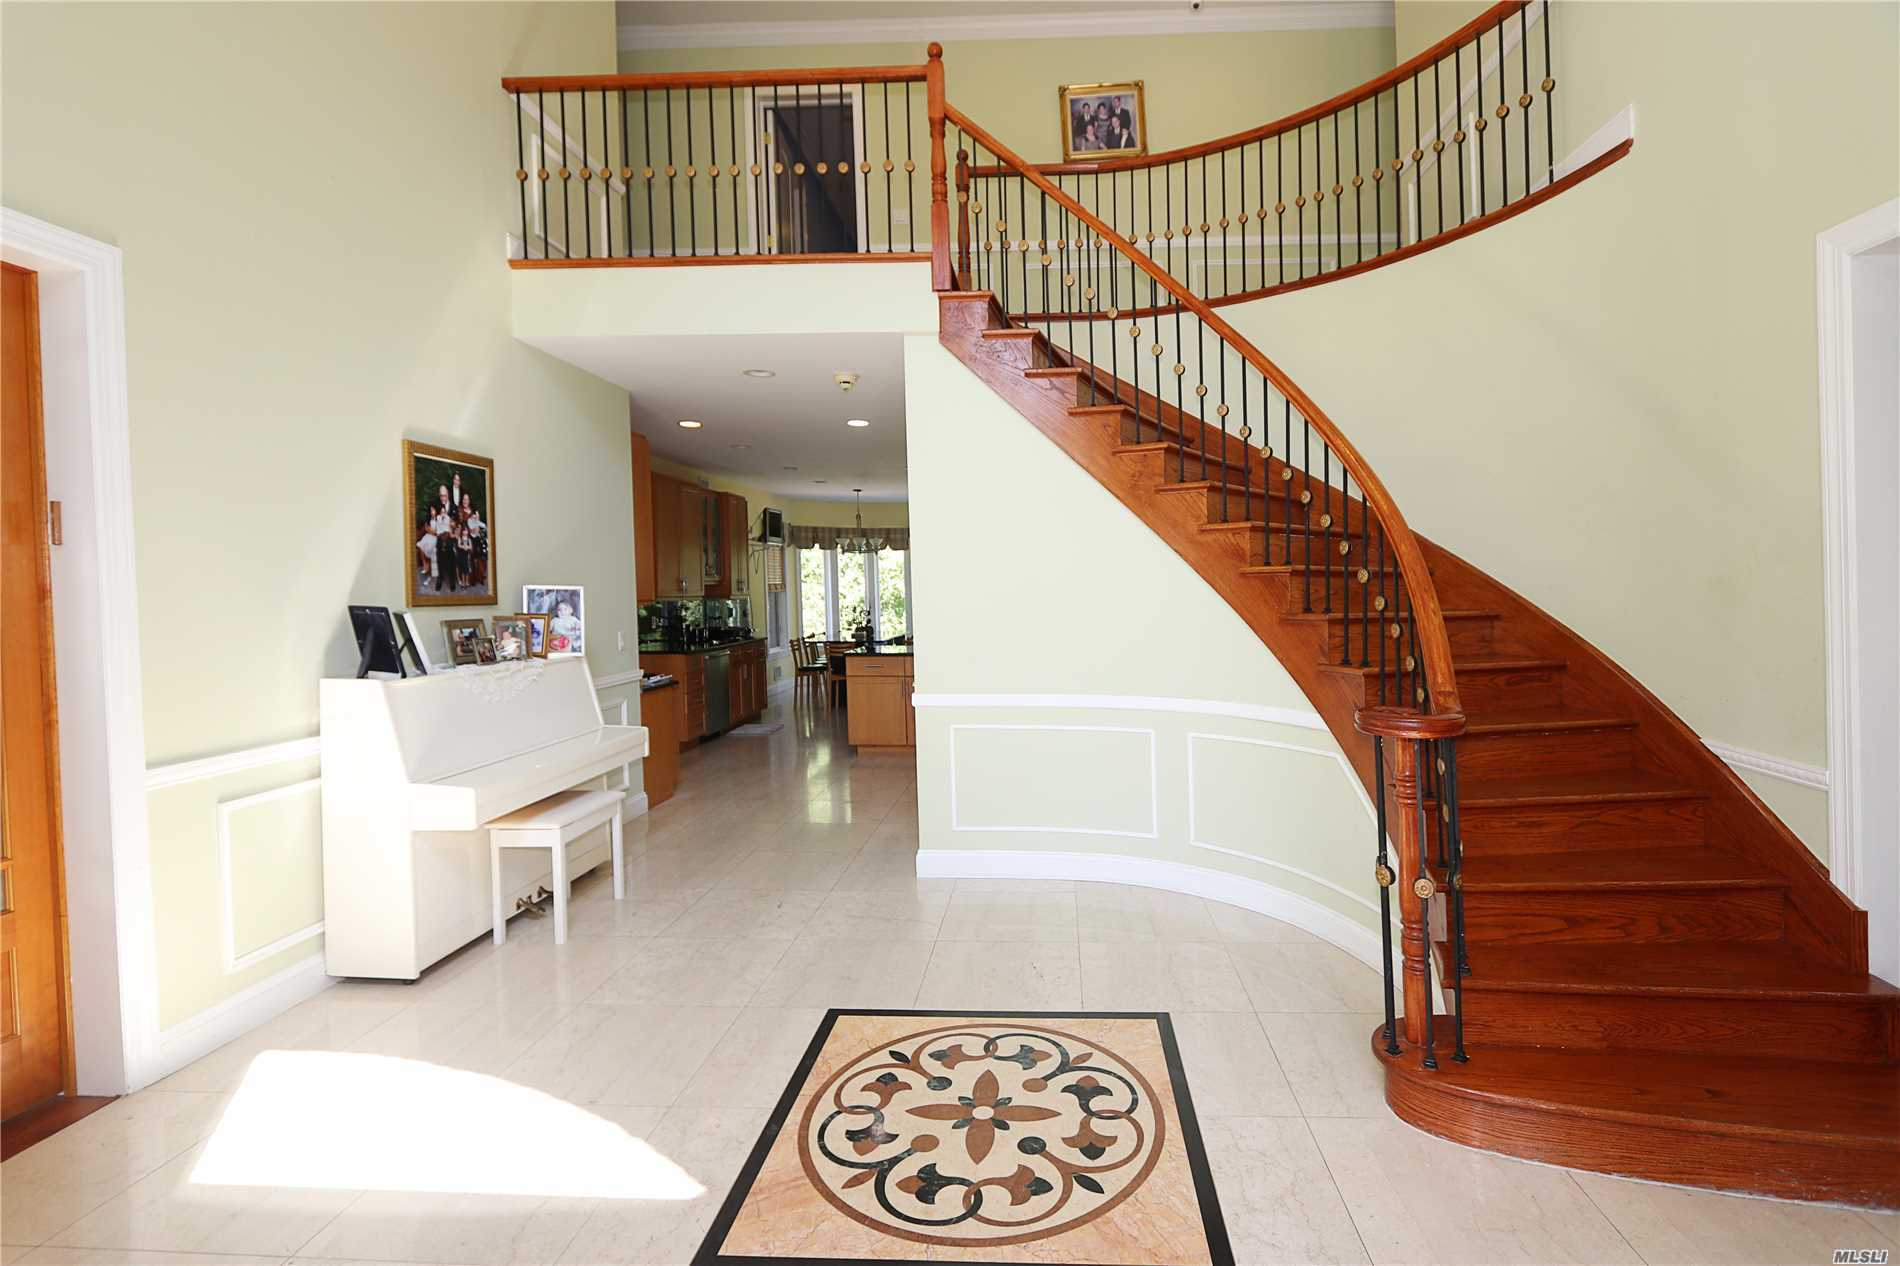 Better Than New!!! Magnificent 4, 750 Sq Ft All Brick C/H Colonial Home On Shy Of Half Acre Lot Size In The Heart Of Great Neck!! Grand Entry, Lg Lr, Fdr, Den, Huge Chef Granite Eik. Guest Bdrm W/Full Bath, Powder Rm. 2 Car Garage On Main Floor. Master Suite Includes Spa Bath, Walk-In Closets & Small Office. Add 3 Lge Family Bdrms, And 3 Full Baths Plus Laundry On 2nd Floor. Finished Basement, Gas/Heat, Cac, Central Vac, Alarm, And Much More. Walk To Parks And Worship.